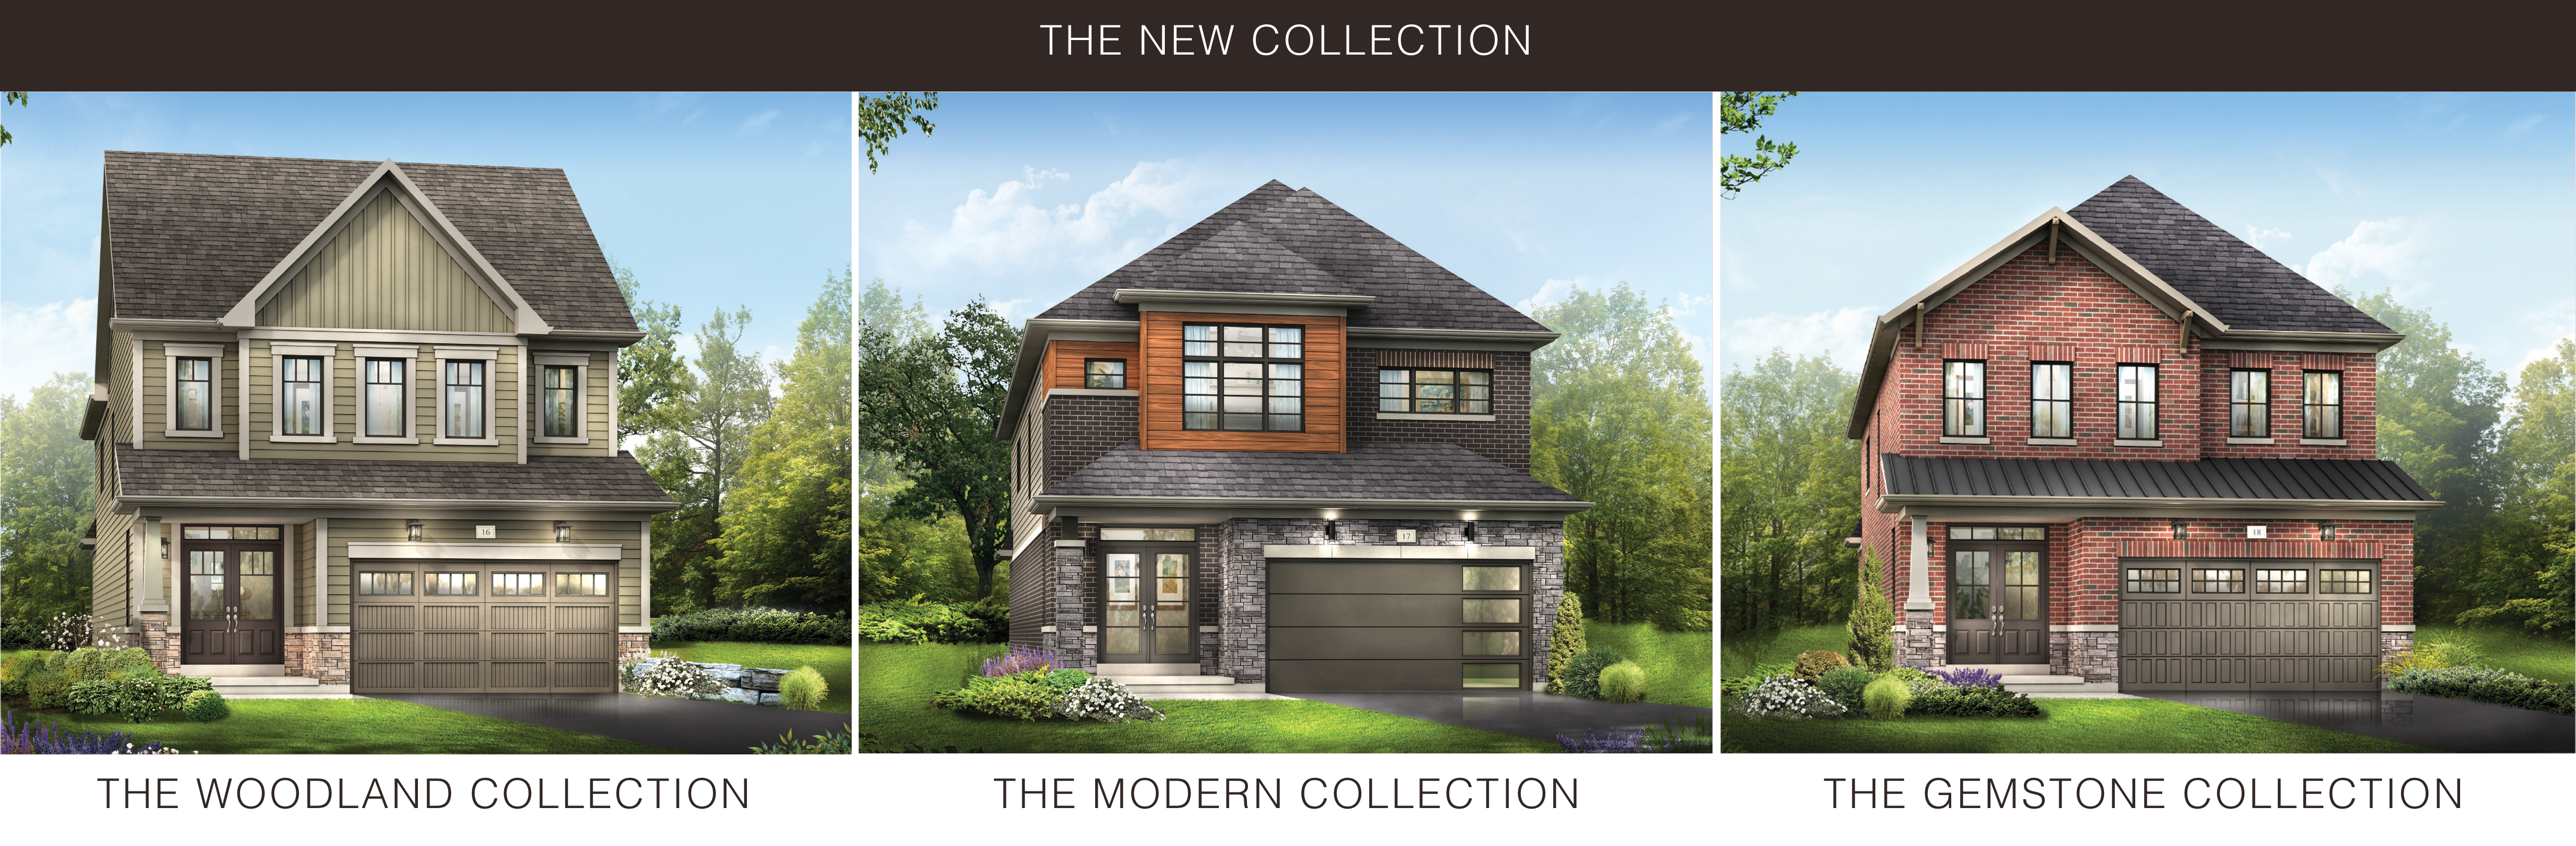 New Homes New Look Introducing Brand New Home Designs At